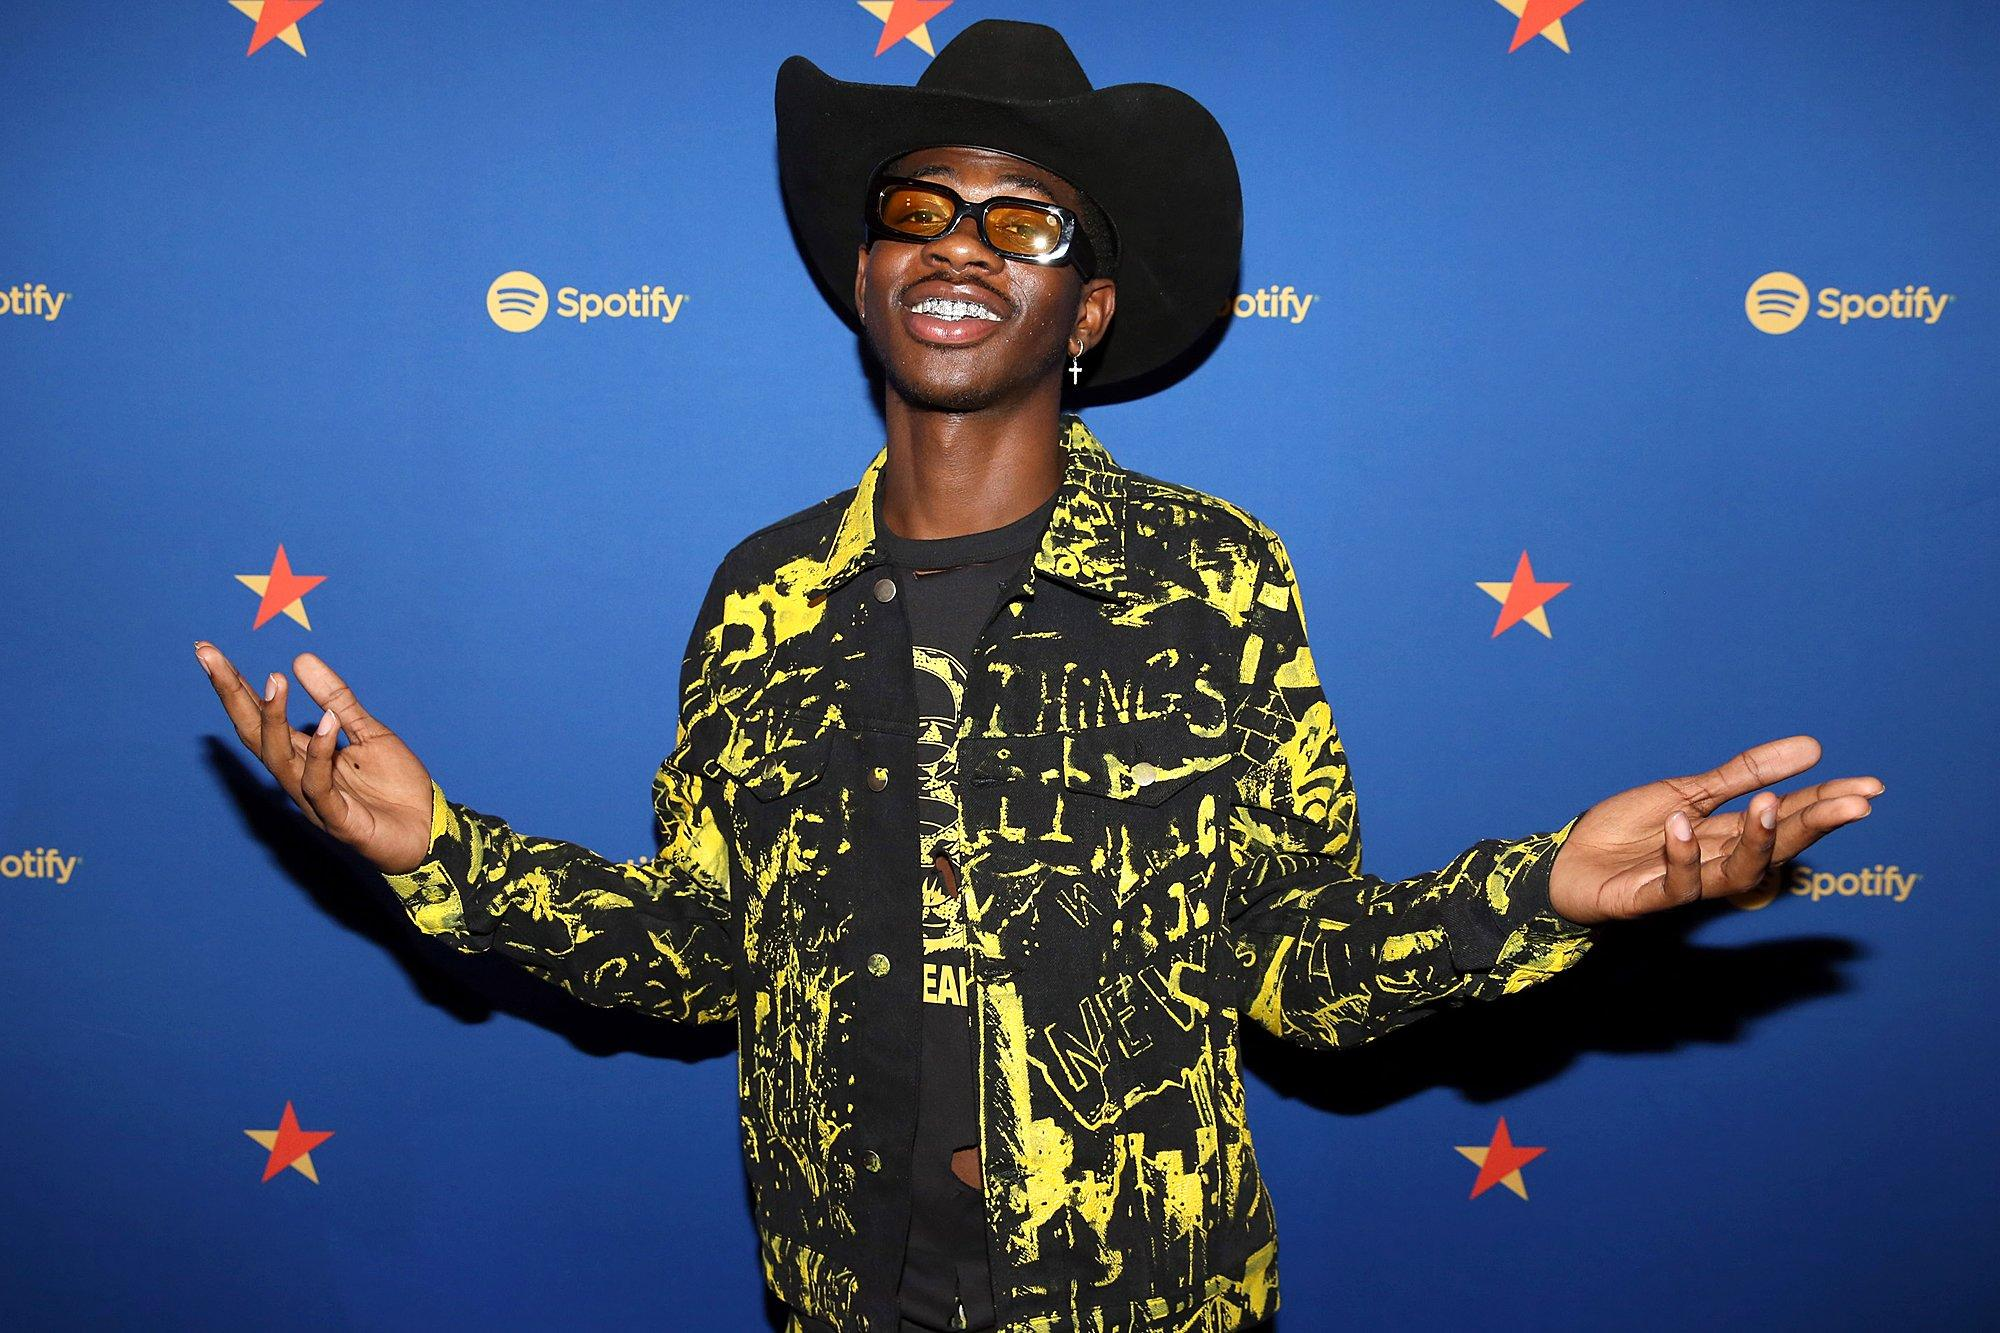 Old Town Road Singer Lil Nas X Comes Out As Gay